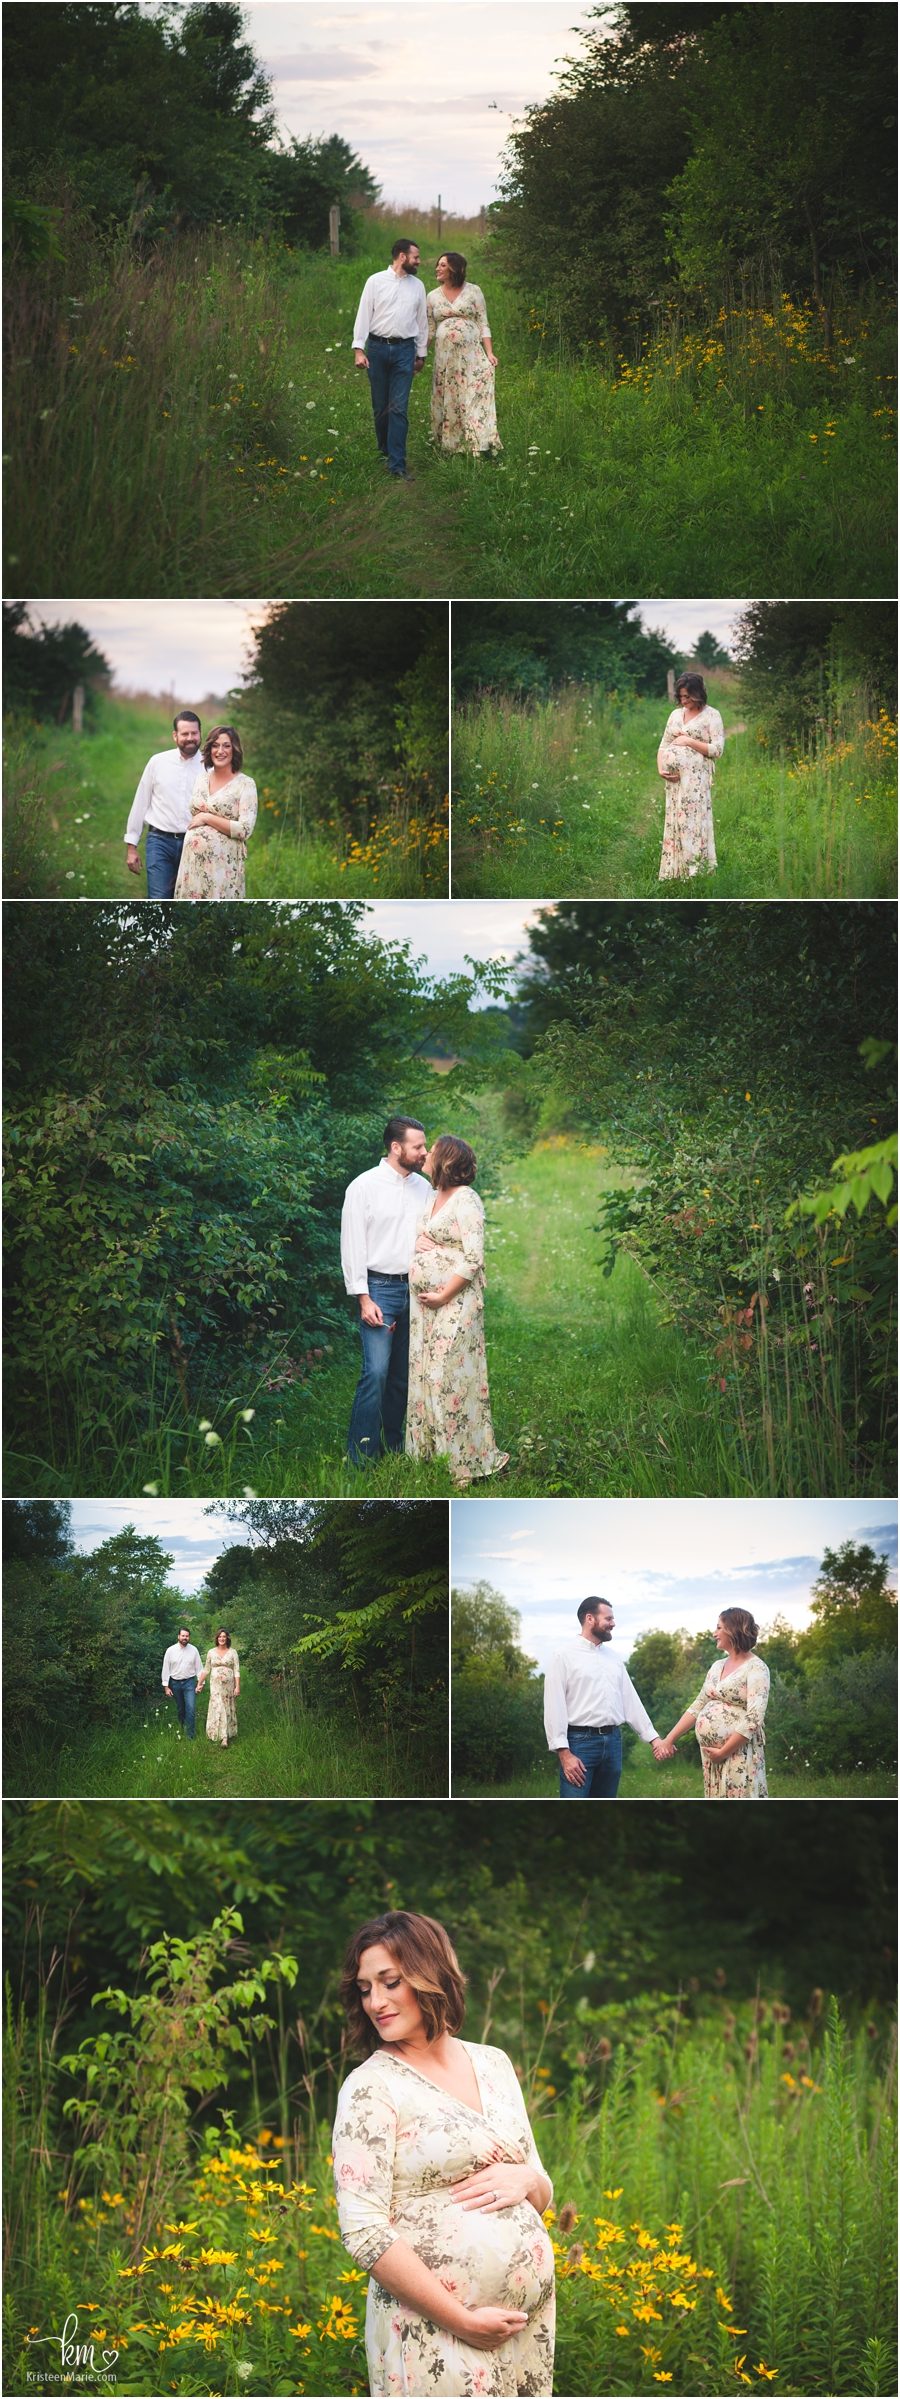 couple in a field - maternity photography by KristeenMarie